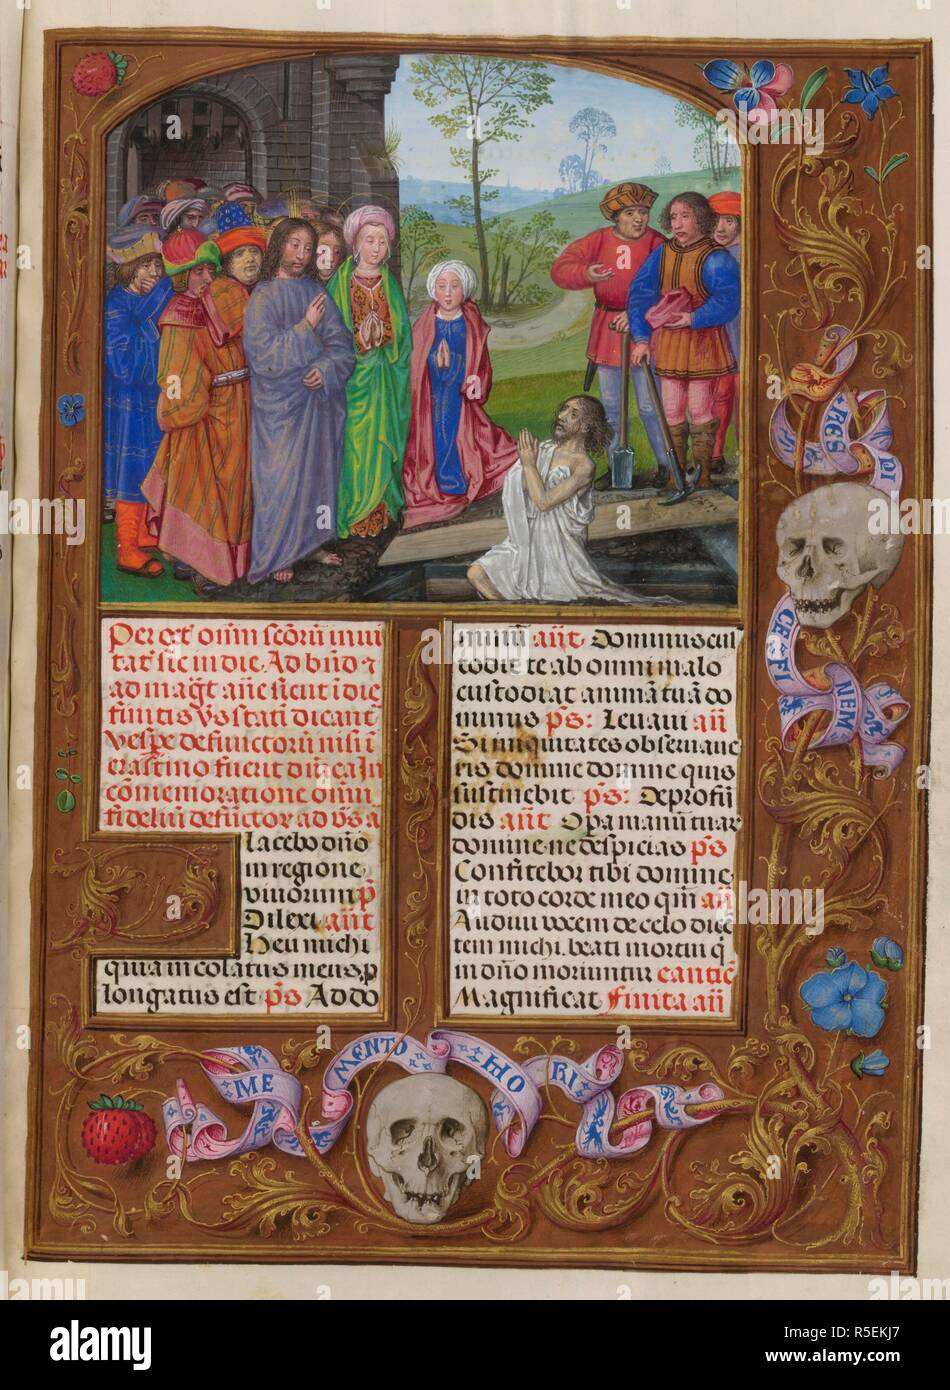 Sanctorale.The Rising of Lazarus. Isabella Breviary. Breviary, Use of the Dominicans ('The Breviary of Queen Isabella of Castile'). c1497. Source: Add. 18851 f.481. Author: Master of James IV of Scotland. - Stock Image